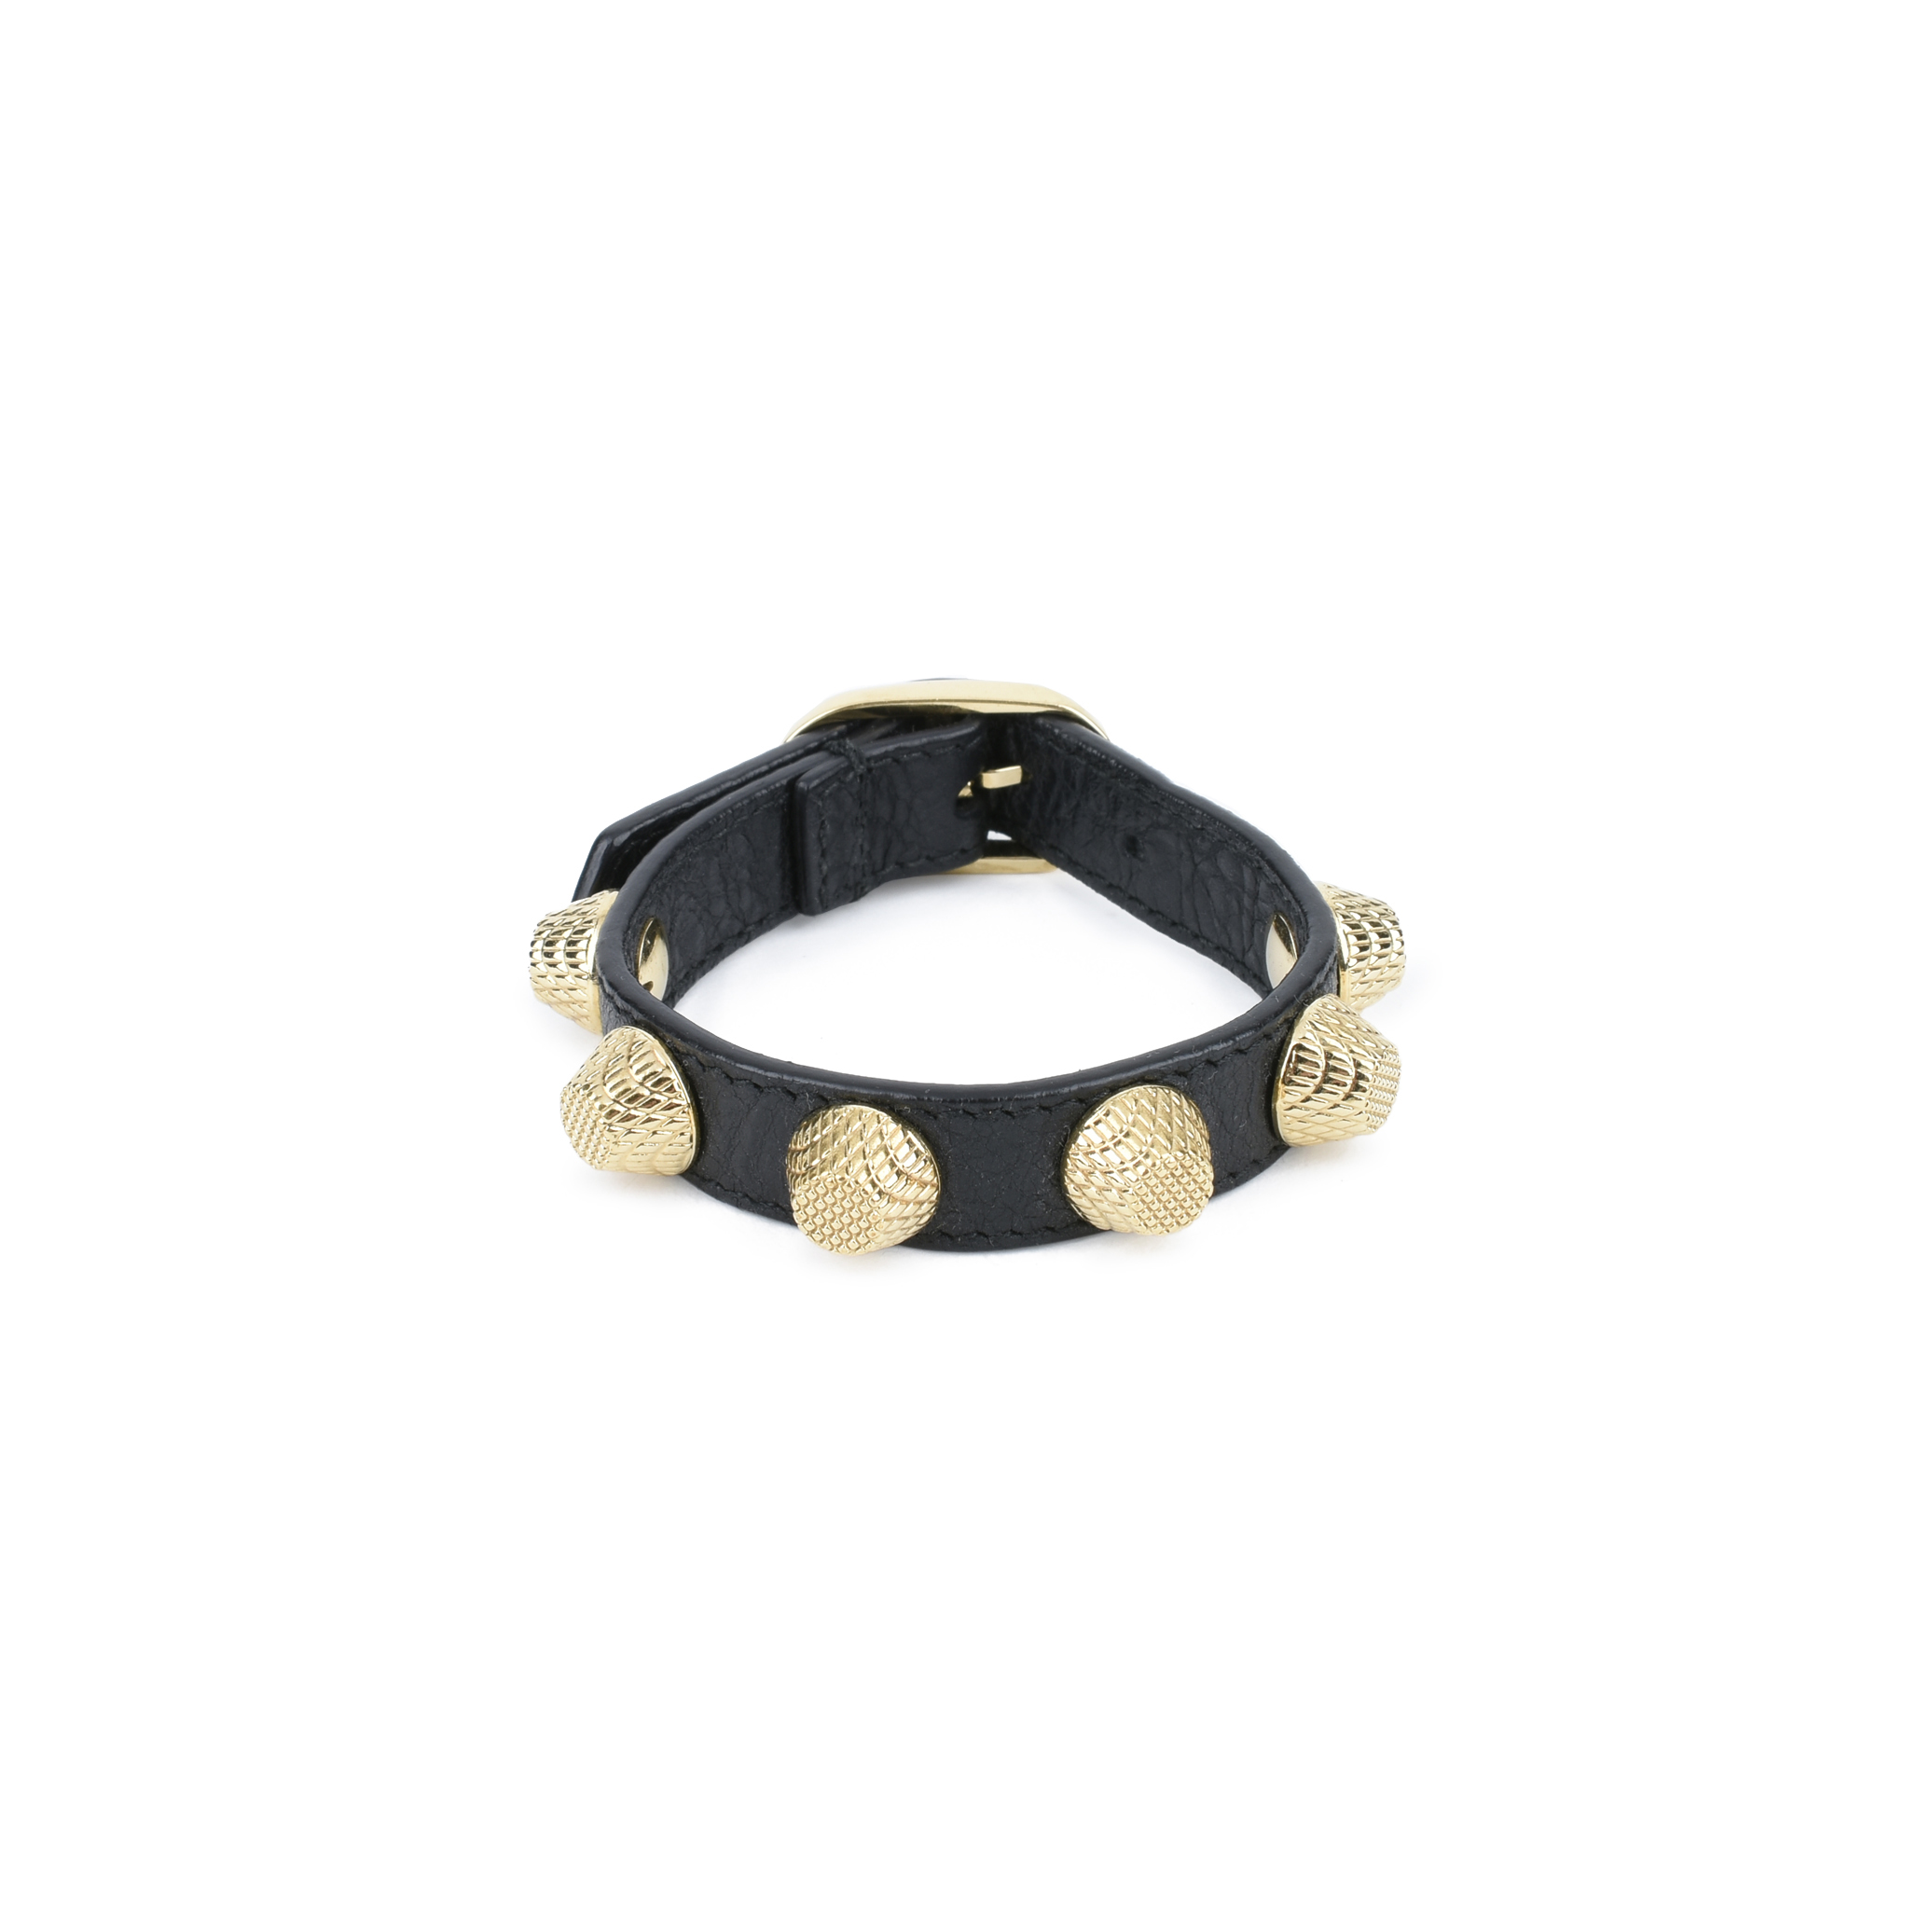 bracelet layer wrist cuff alloy leather belt products ablaze buckle bangle wholesale jewelry bangles wide